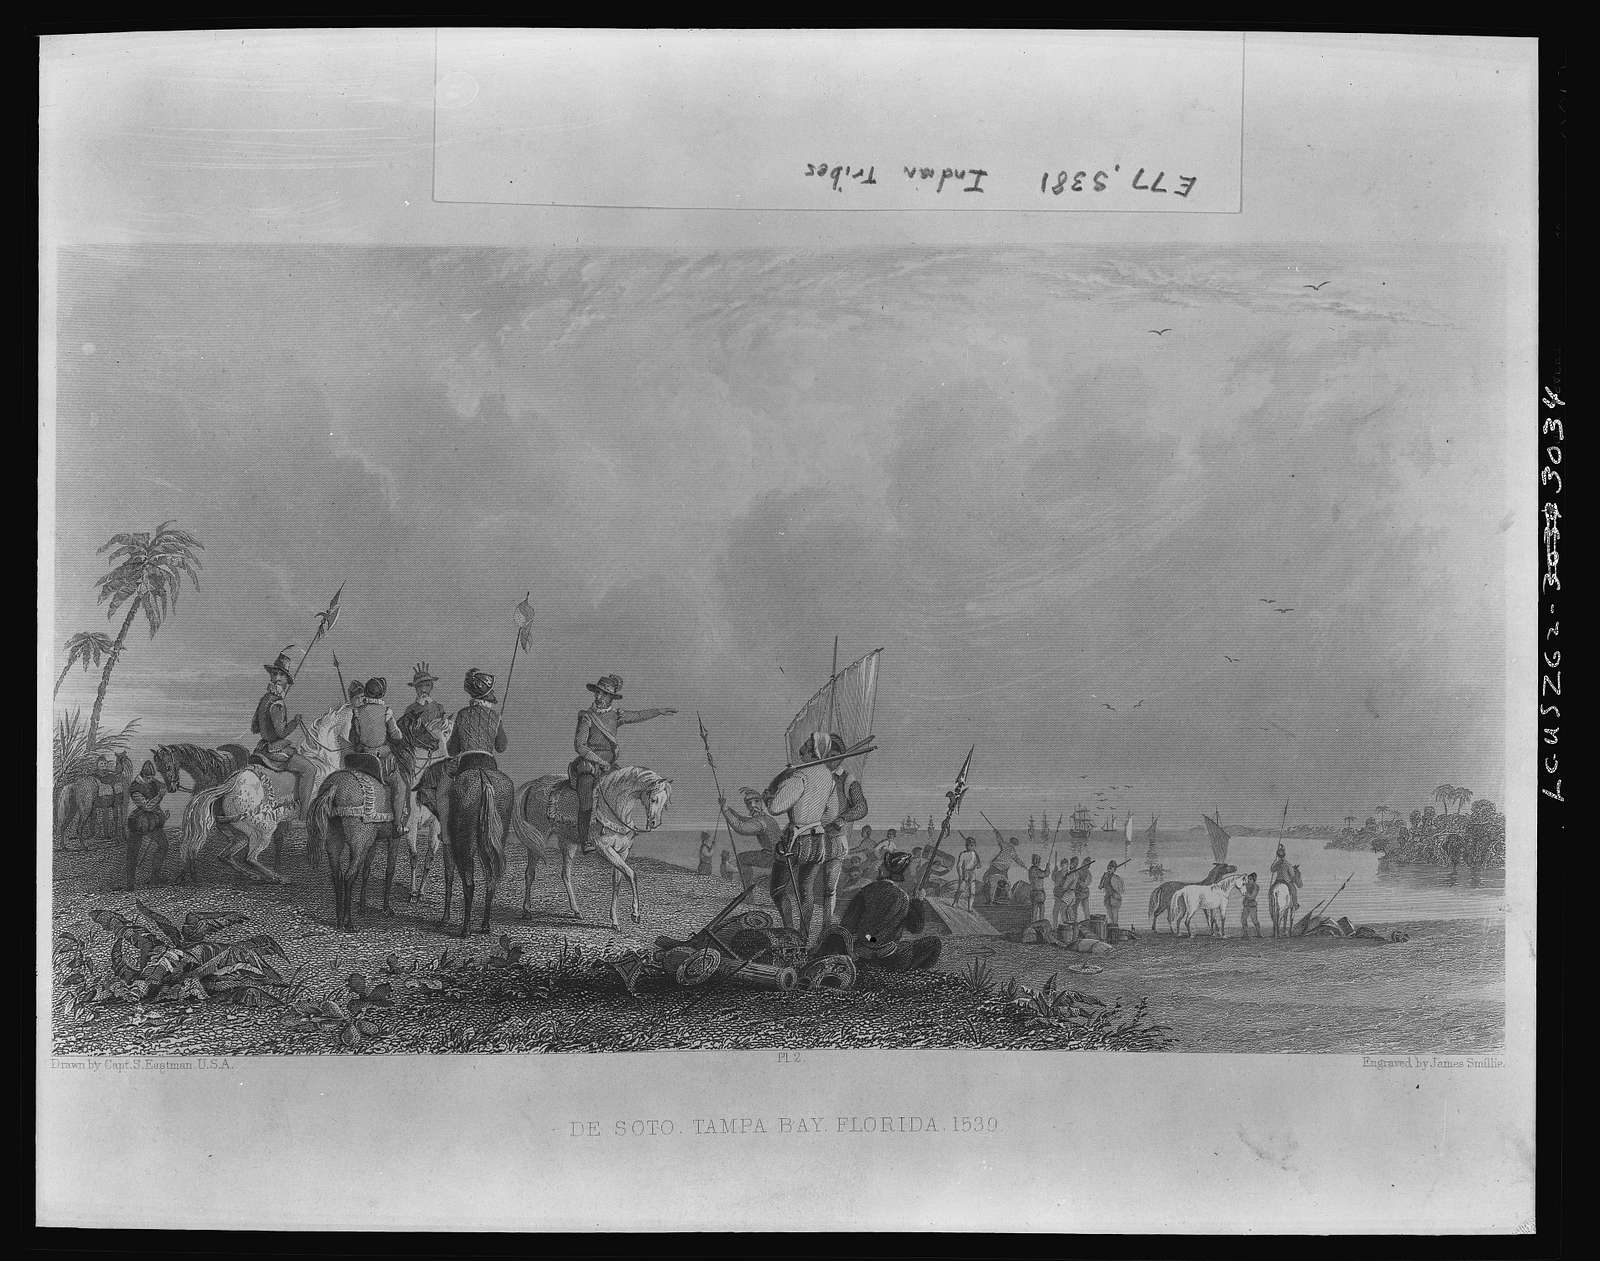 De Soto -- Tampa Bay, Florida--1539 / Drawn by Capt. S. Eastman, U.S.A. ; Engraved by James Smillie.